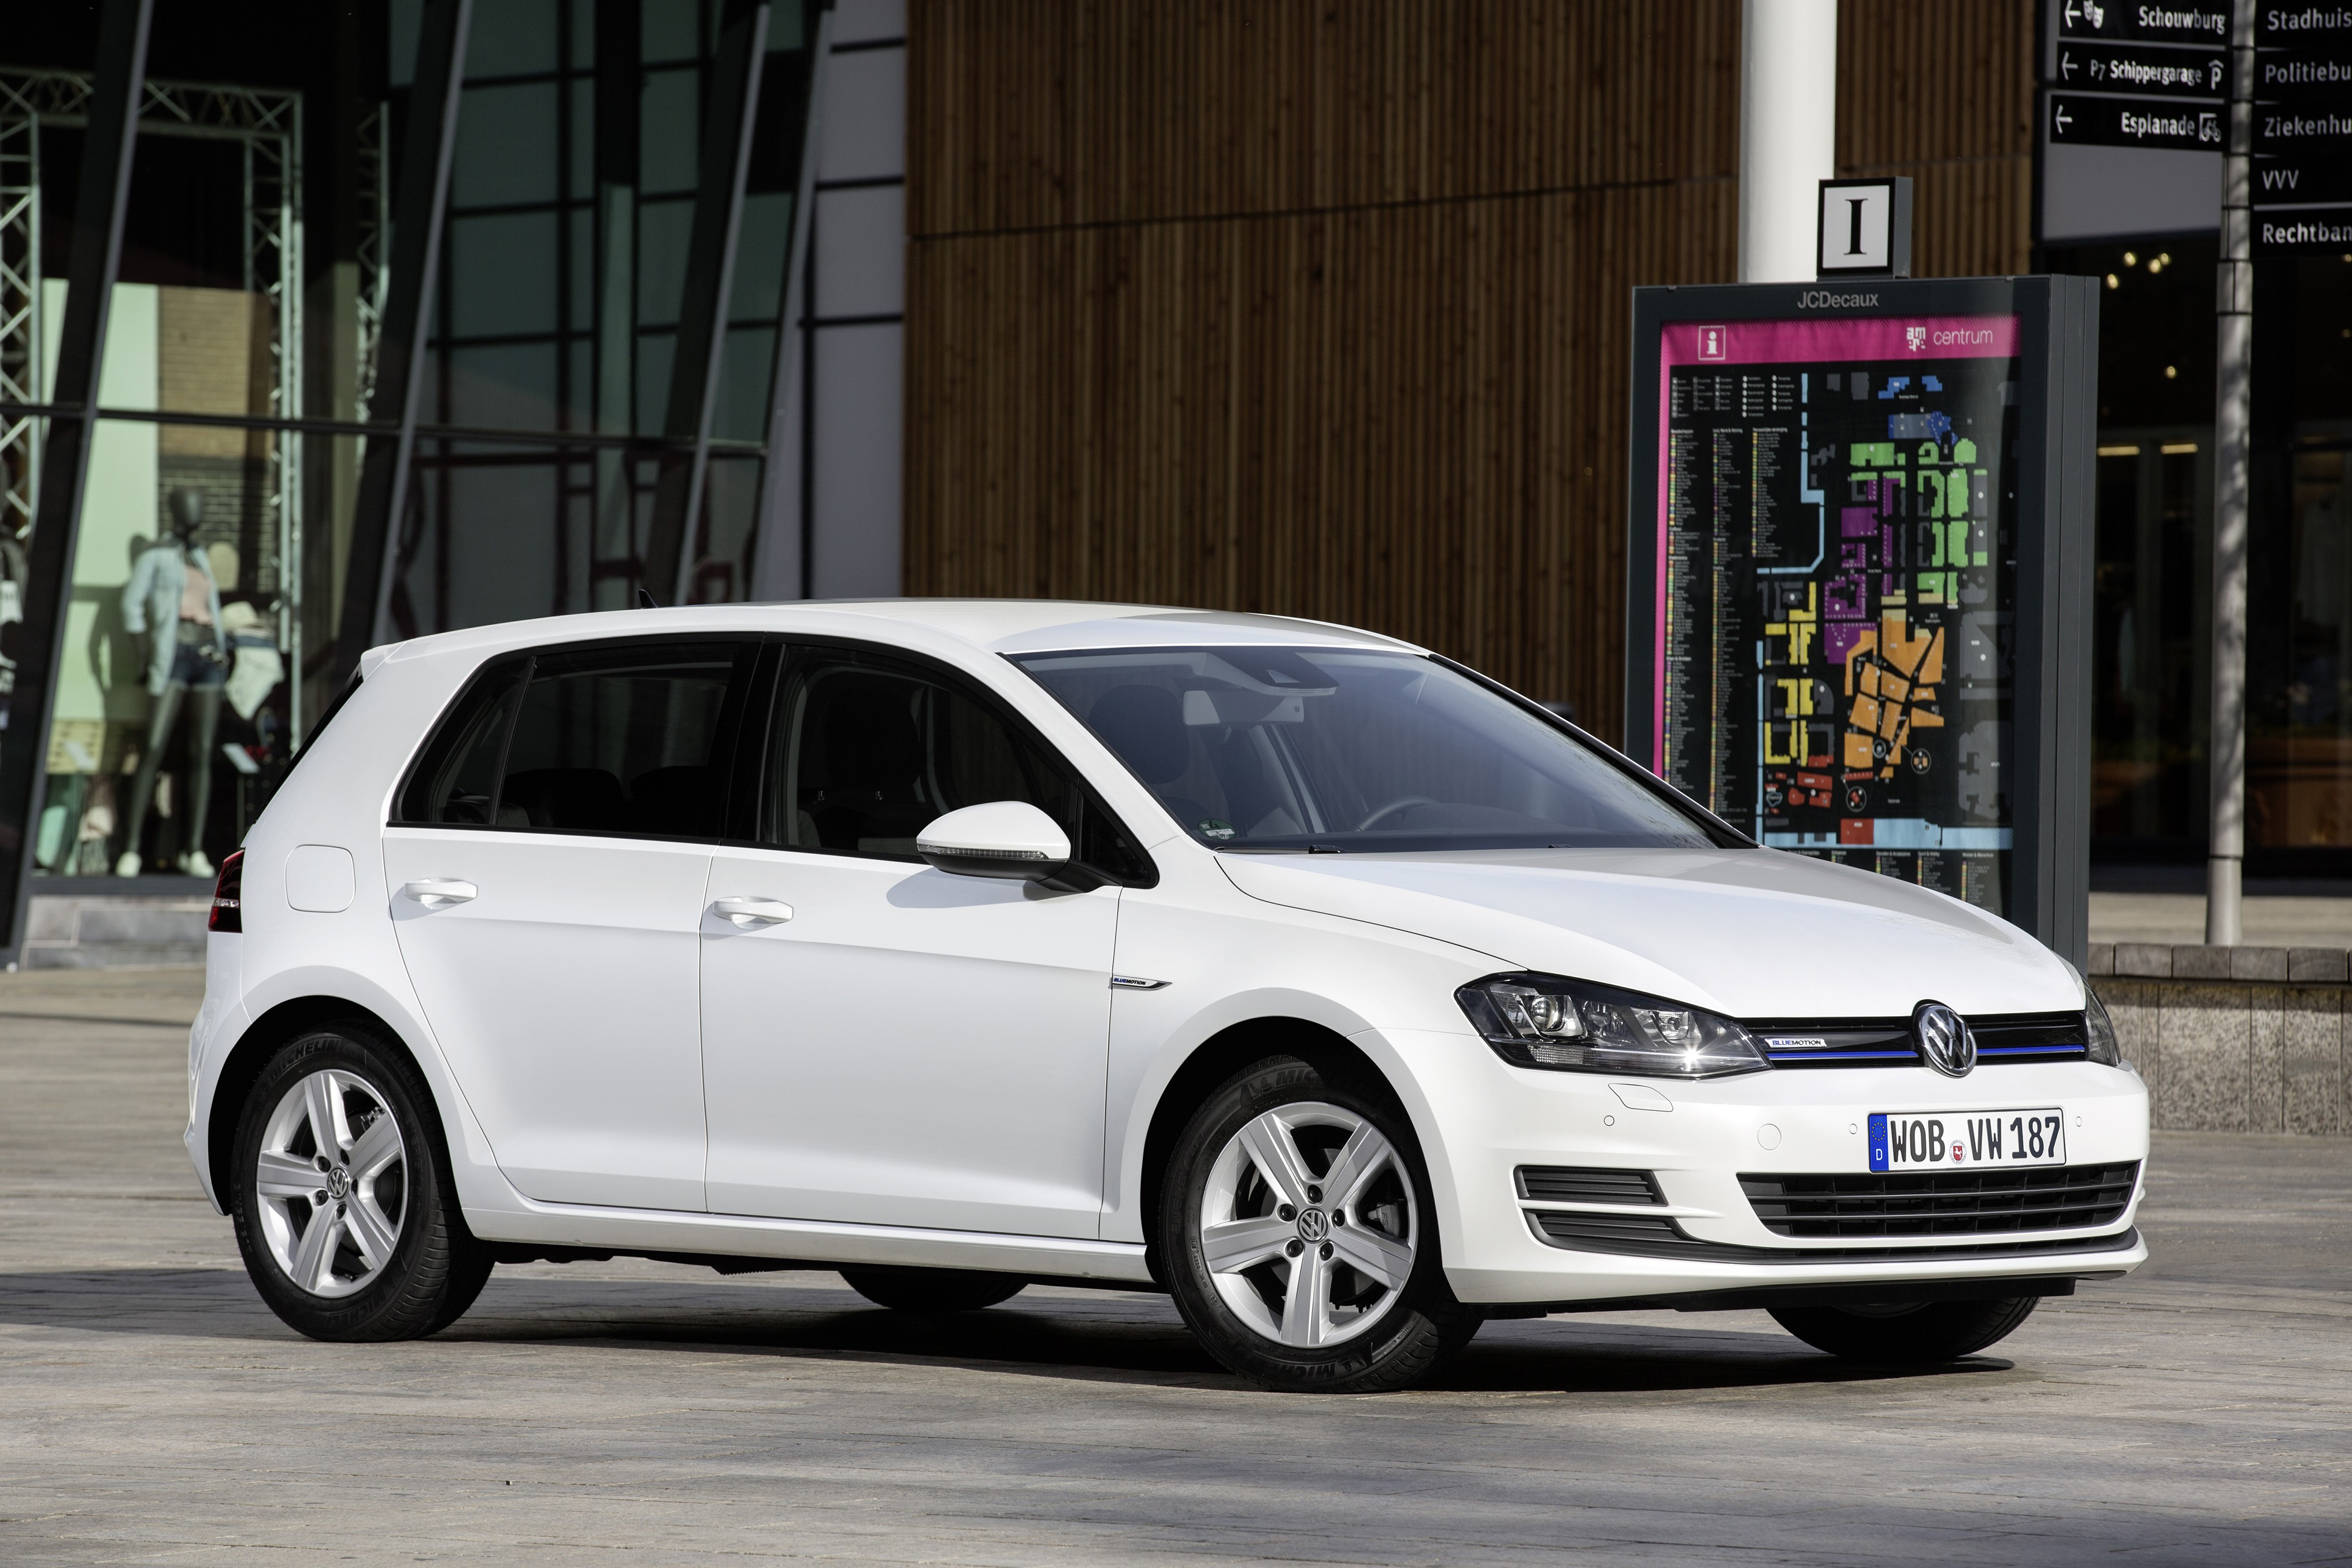 volkswagen golf 1 0 tsi bluemotion debuts with 3 cylinder turbo engine autoevolution. Black Bedroom Furniture Sets. Home Design Ideas